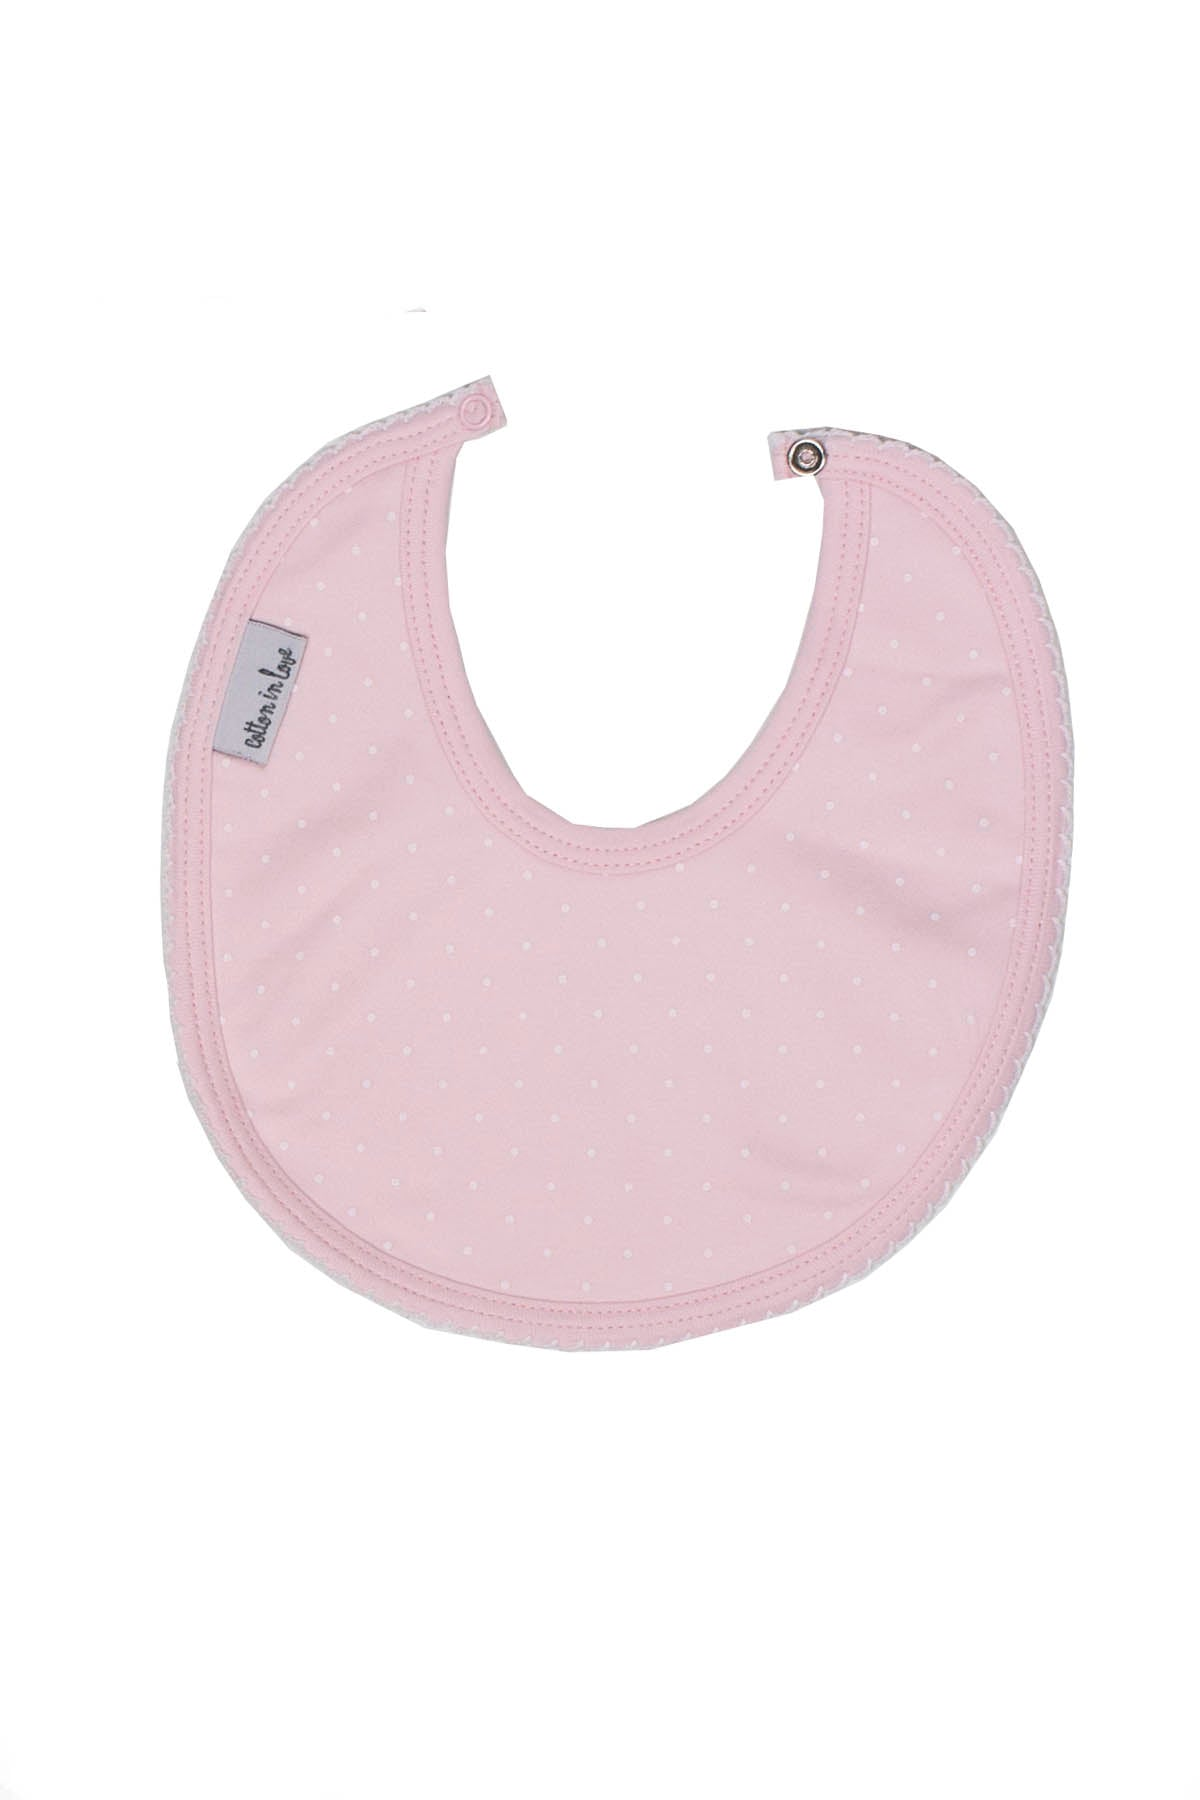 Pima Cotton Bib Pink little white dots